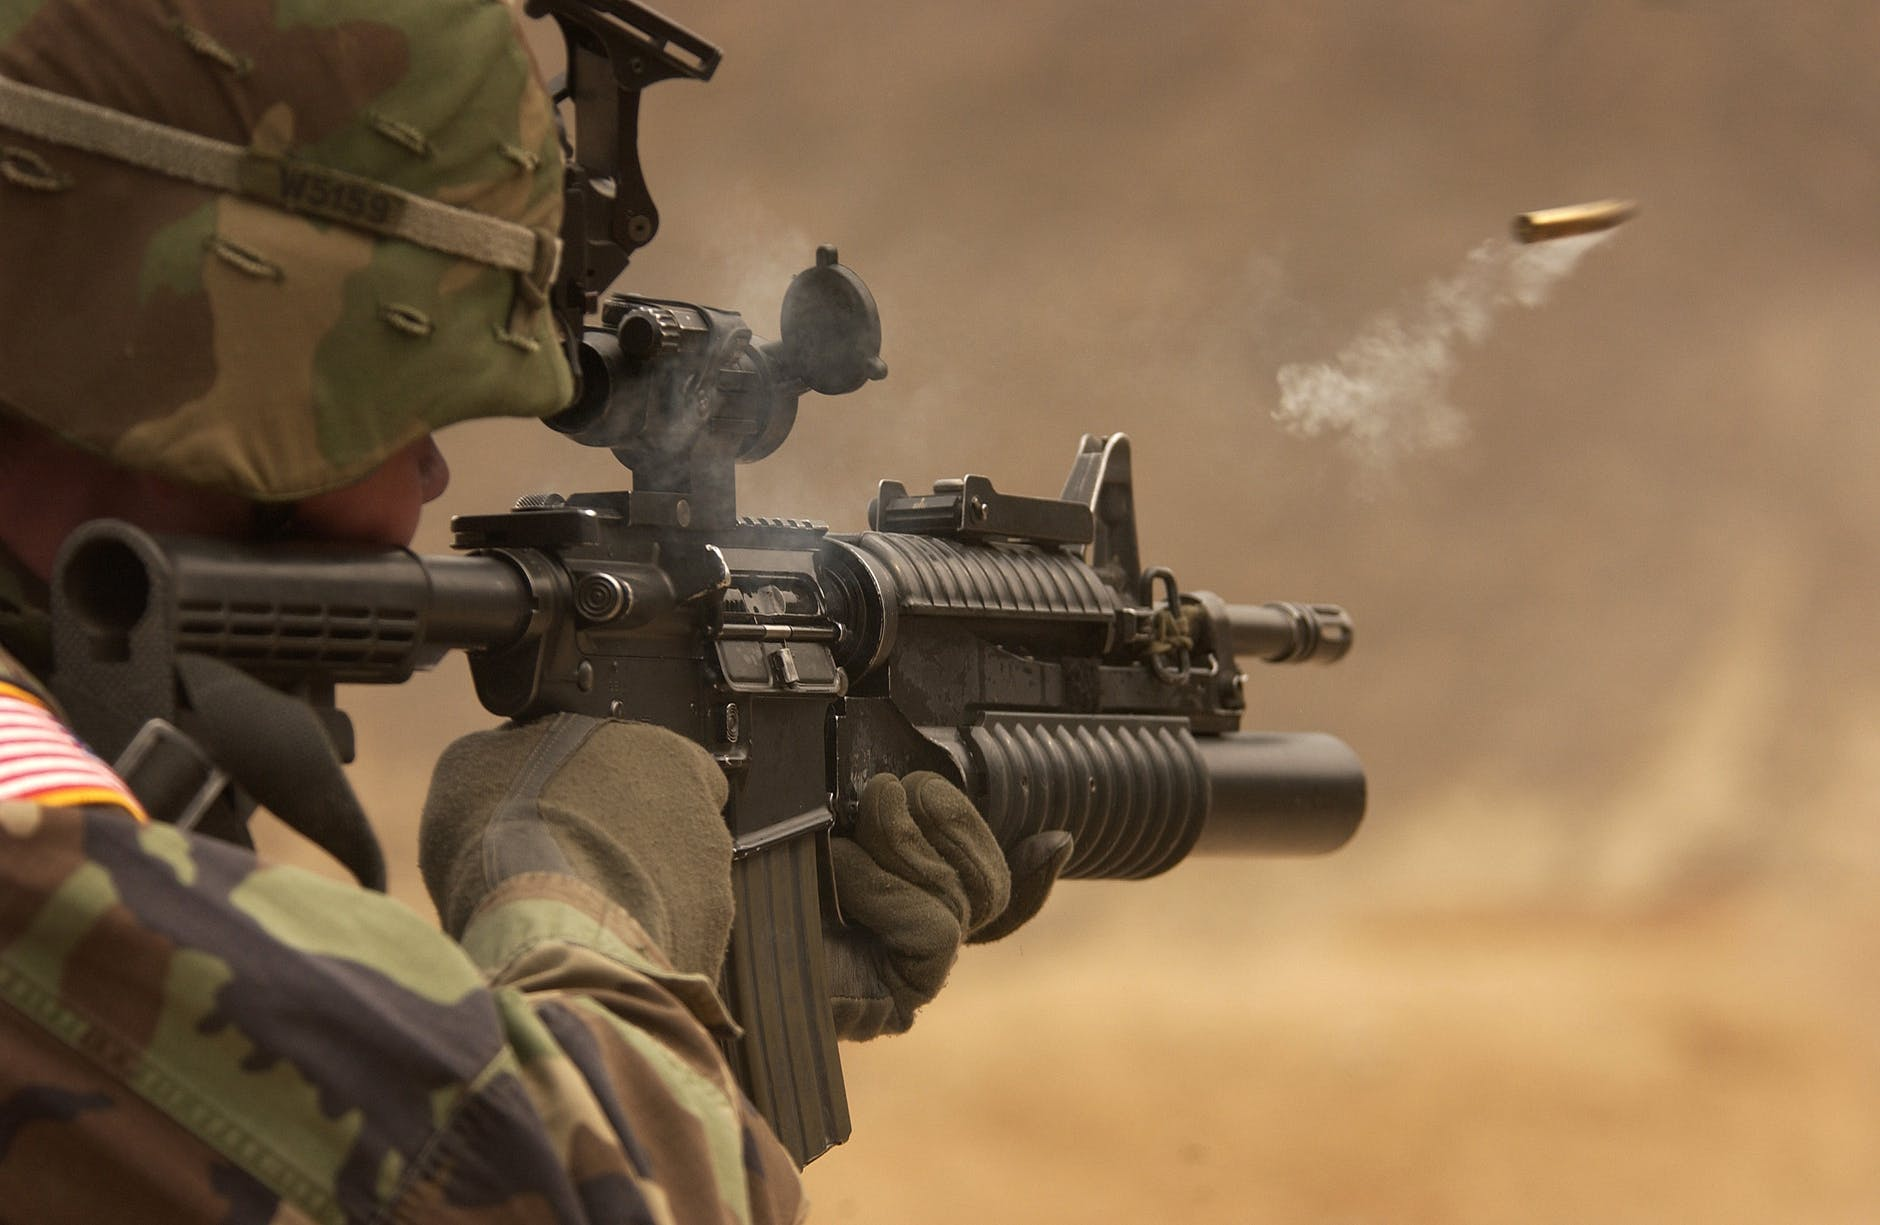 automatic weapon bullet camouflage close up